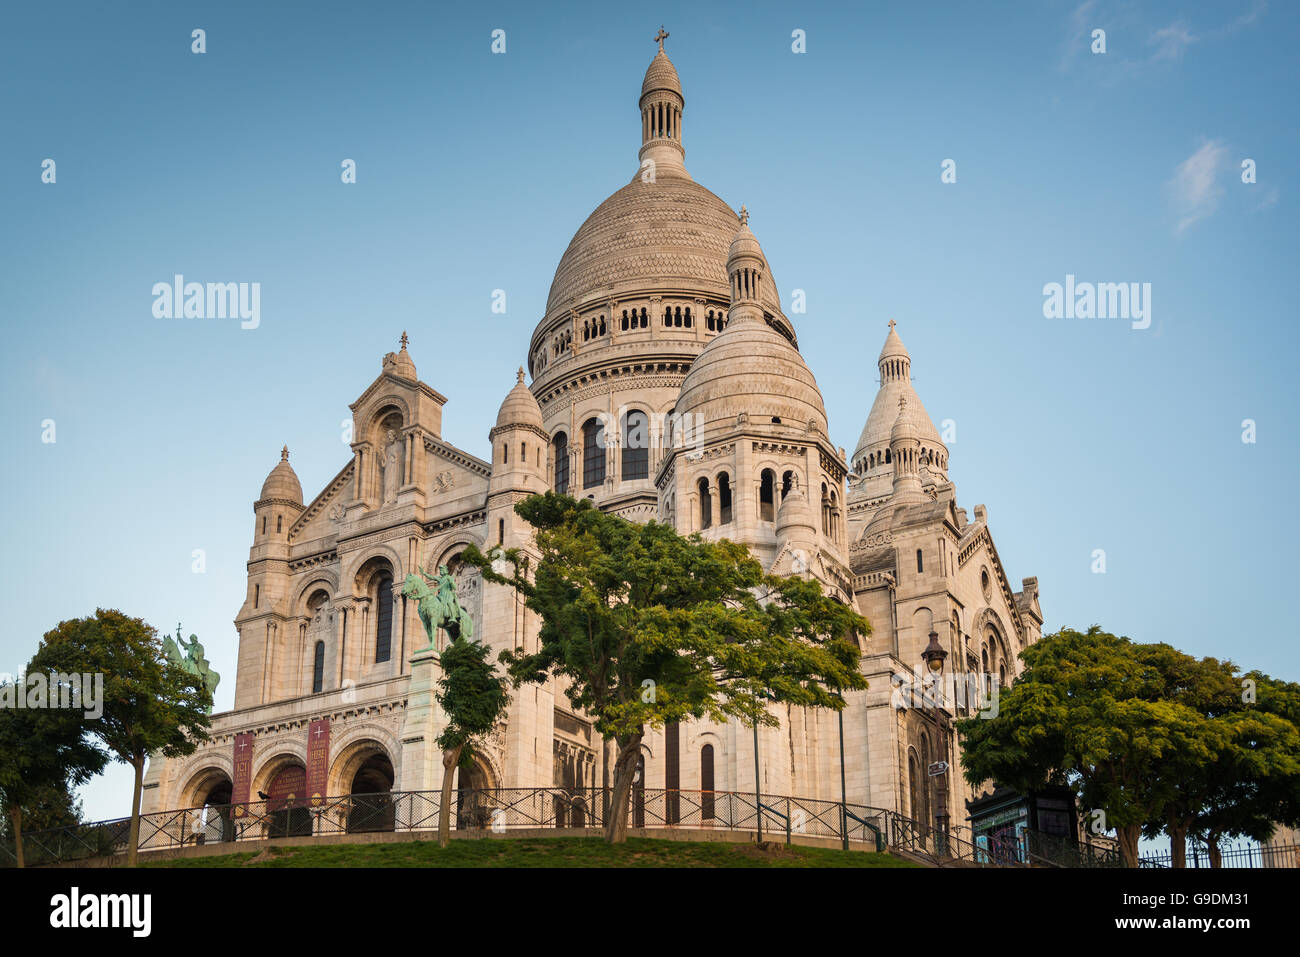 Sacre-Coeur Basilica early in the morning at first sunlight . - Stock Image